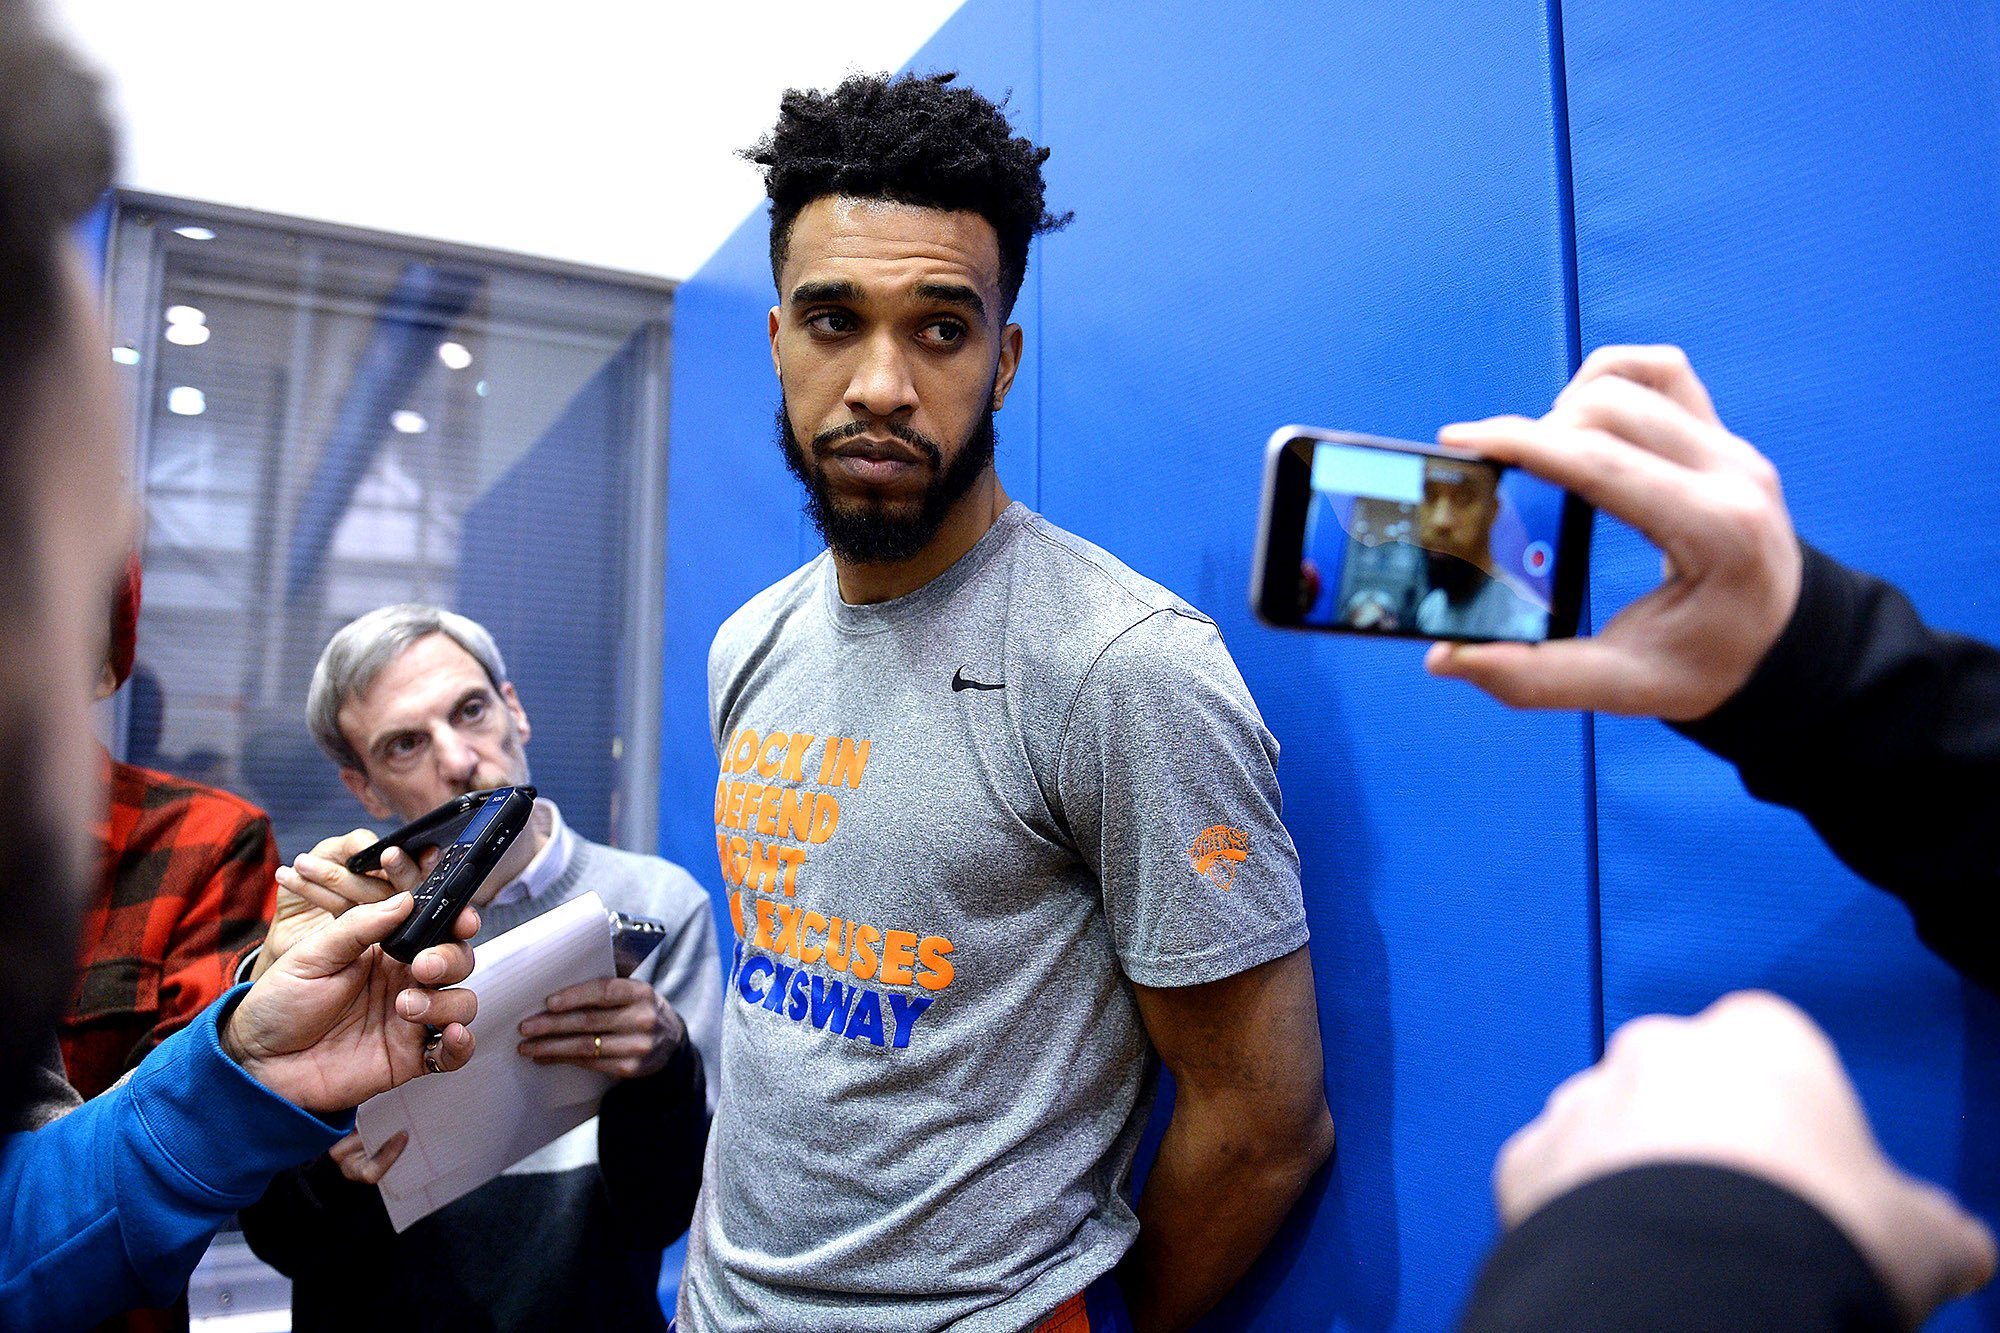 Courtney Lee wants to save Knicks, not run from them